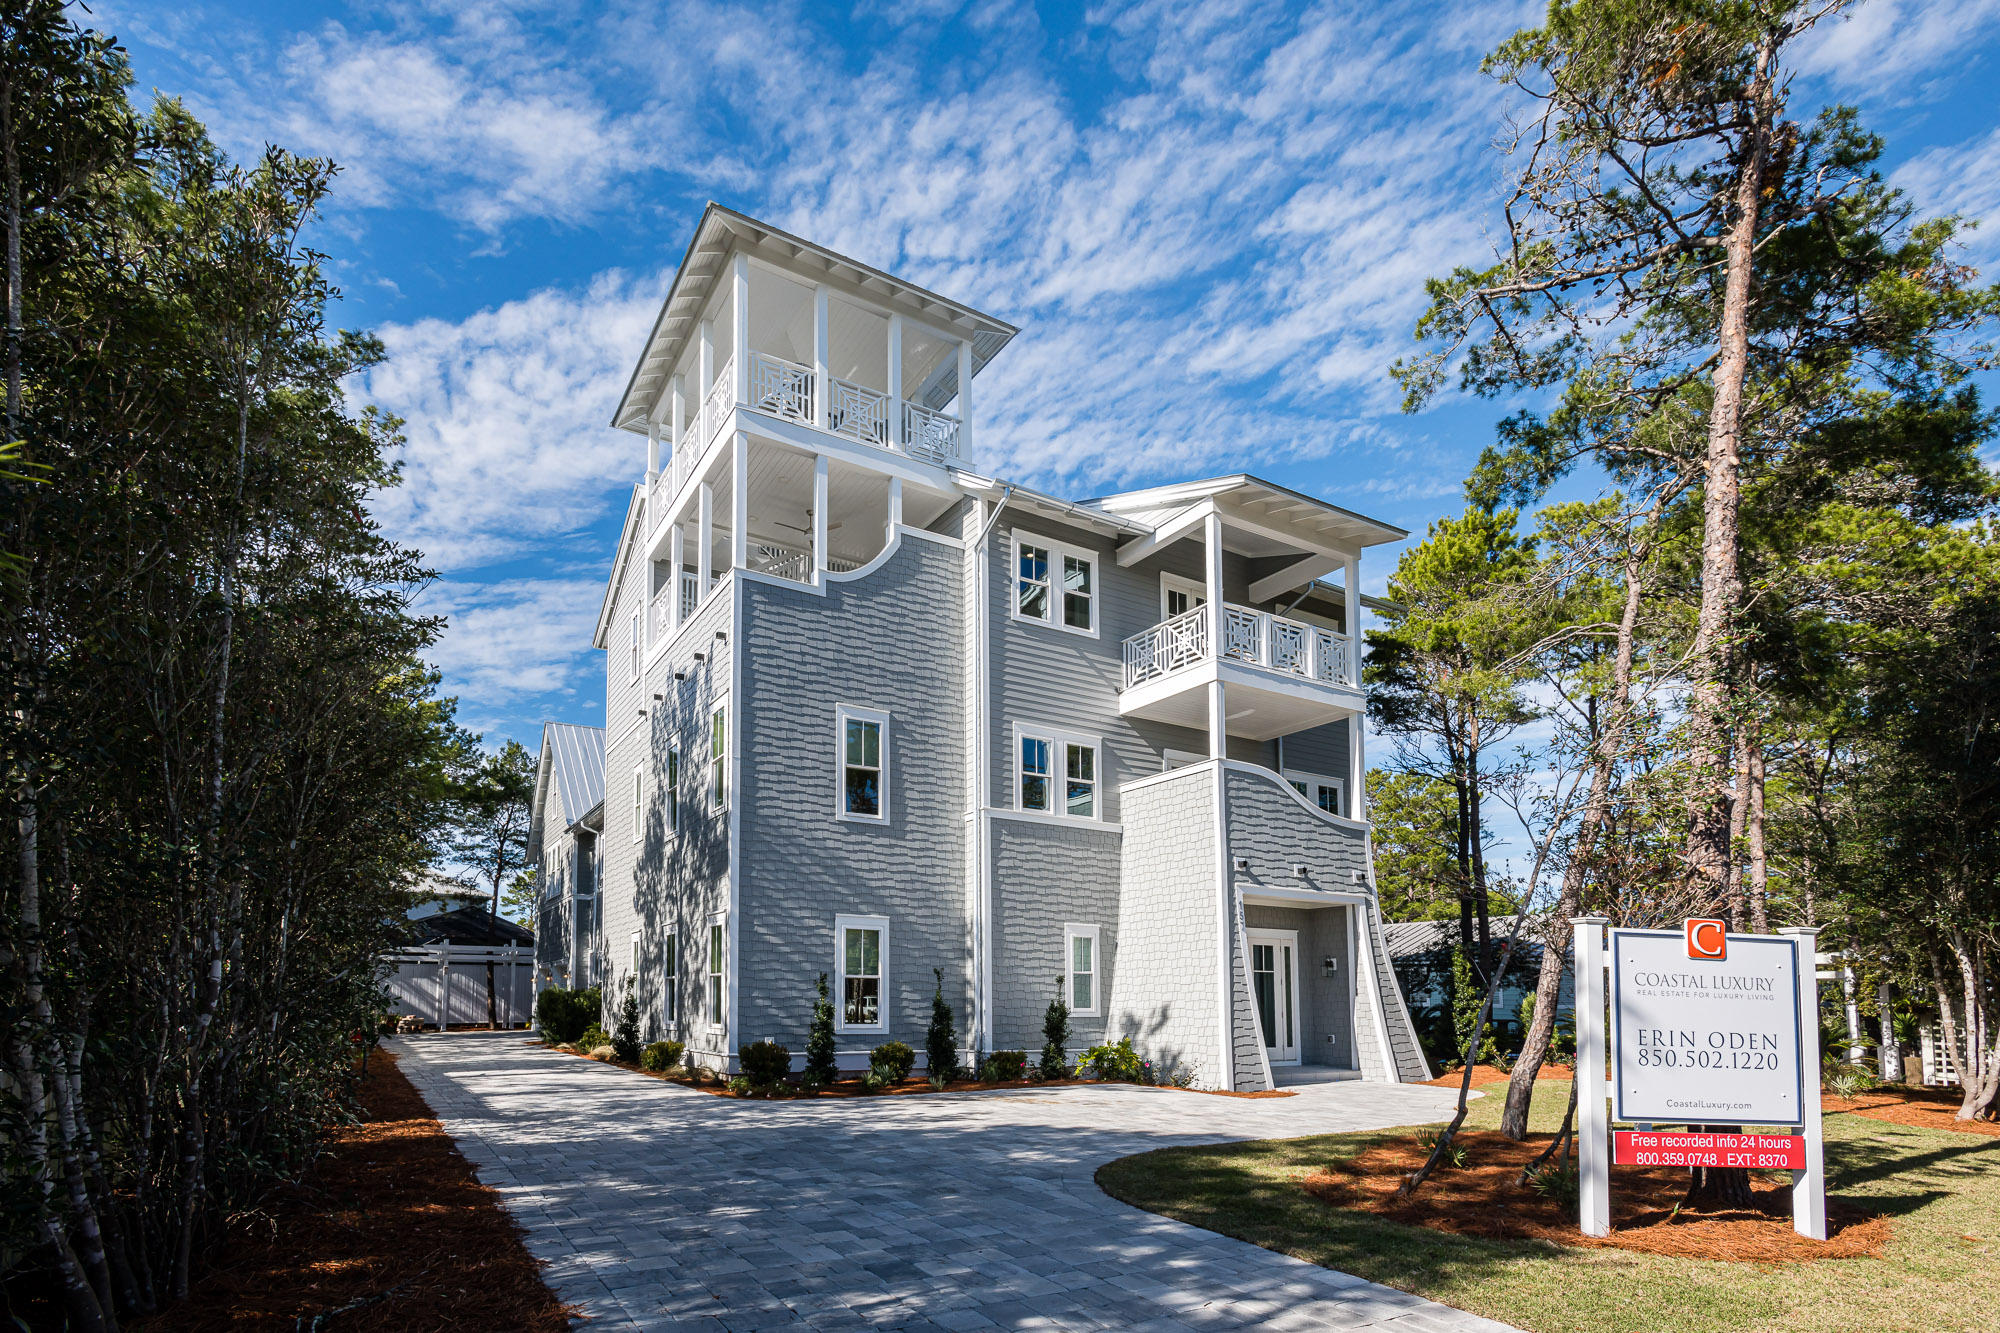 Photo of home for sale at 157 Seacrest, Inlet Beach FL